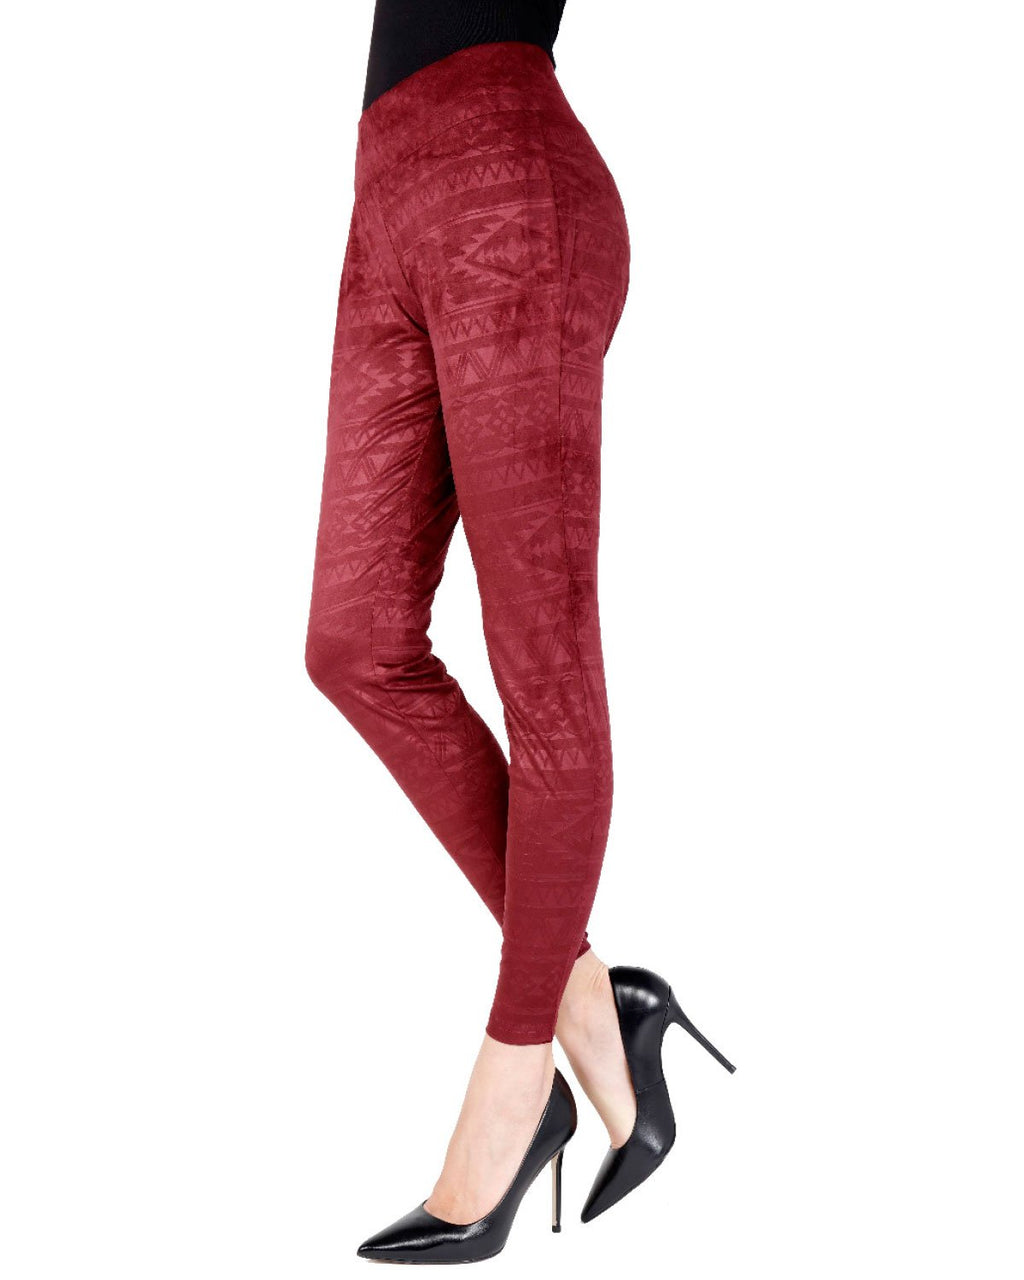 Memoi Burgundy Tribal Inspired Shaping Legging | Women's Premium Fashion Leggings